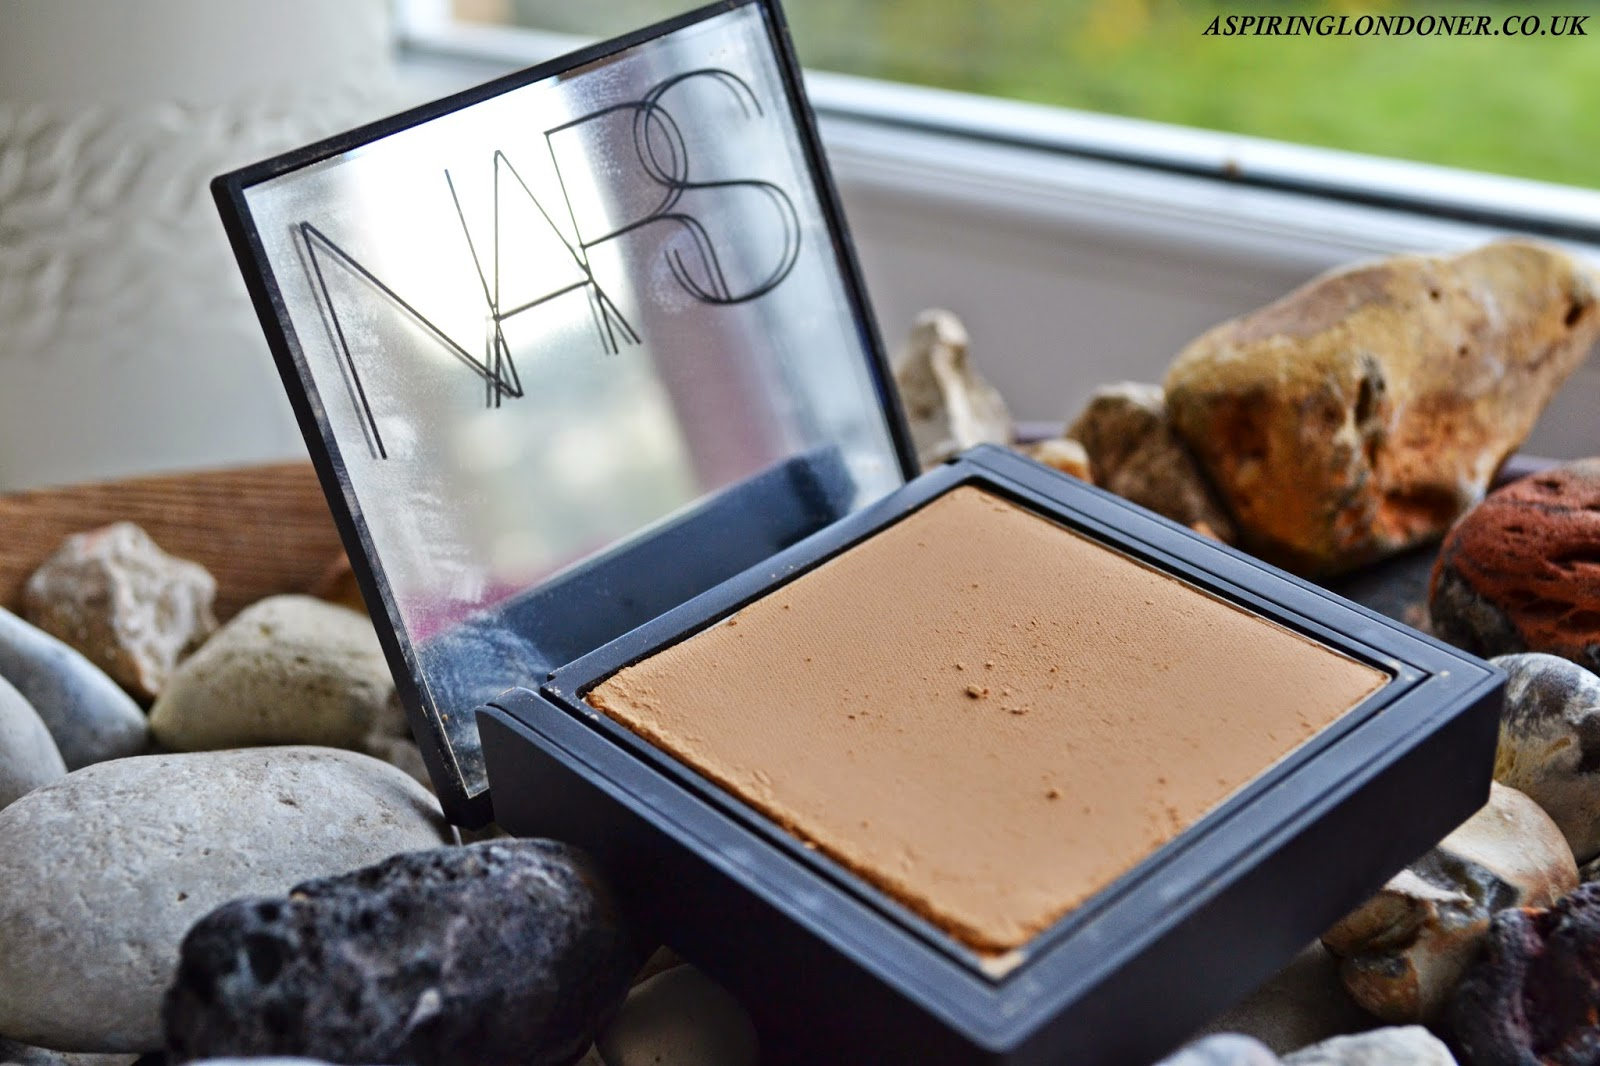 NARS All Day Luminous Powder Foundation Review - Aspiring Londoner